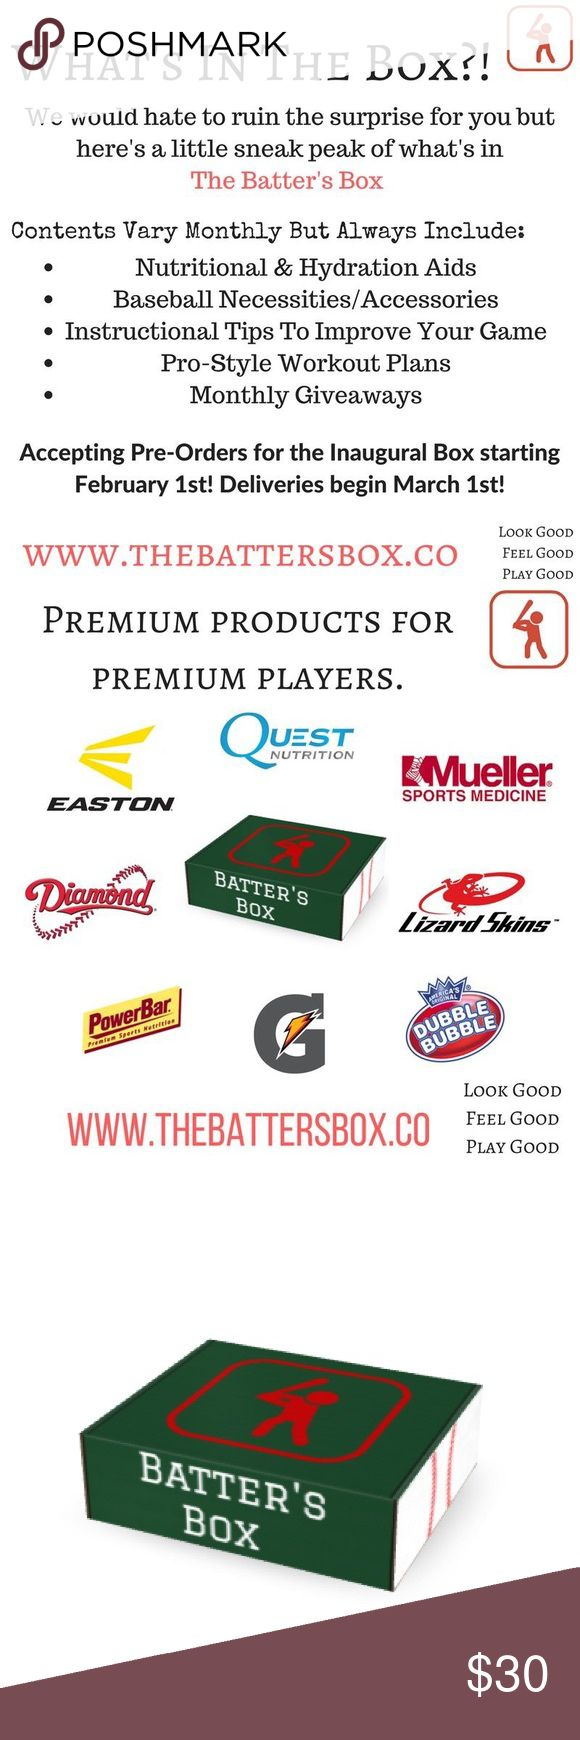 Baseball Supply Box! Thebattersbox.com I just wanted to share something with you fellow baseball parents! It's filled with baseball gear, hydration supplements and monthly surprises . Some of the boxes this month included Spring training tickets and a jersey! Designed by baseball players, made for baseball players ! Also was featured on bay news 9 !📦Ships next day 💚bundle and save!! 💋price firm. Nike Other